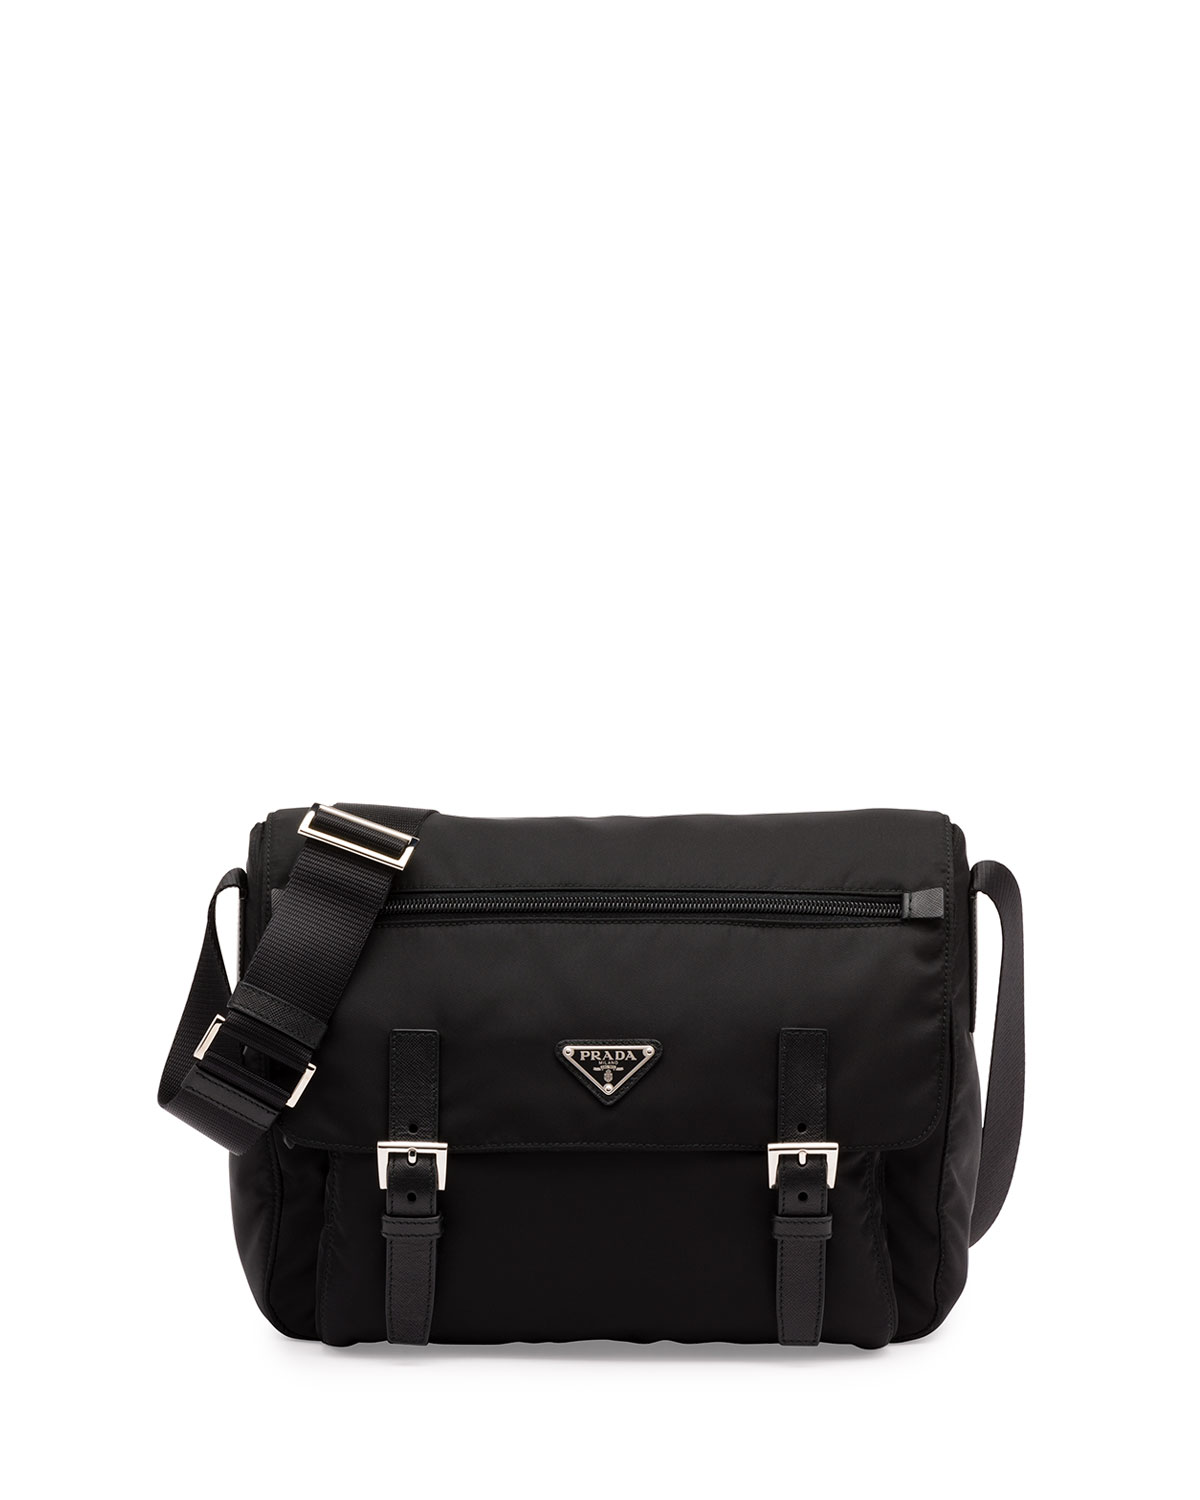 71df5956ff1b Prada Nylon Messenger Bag